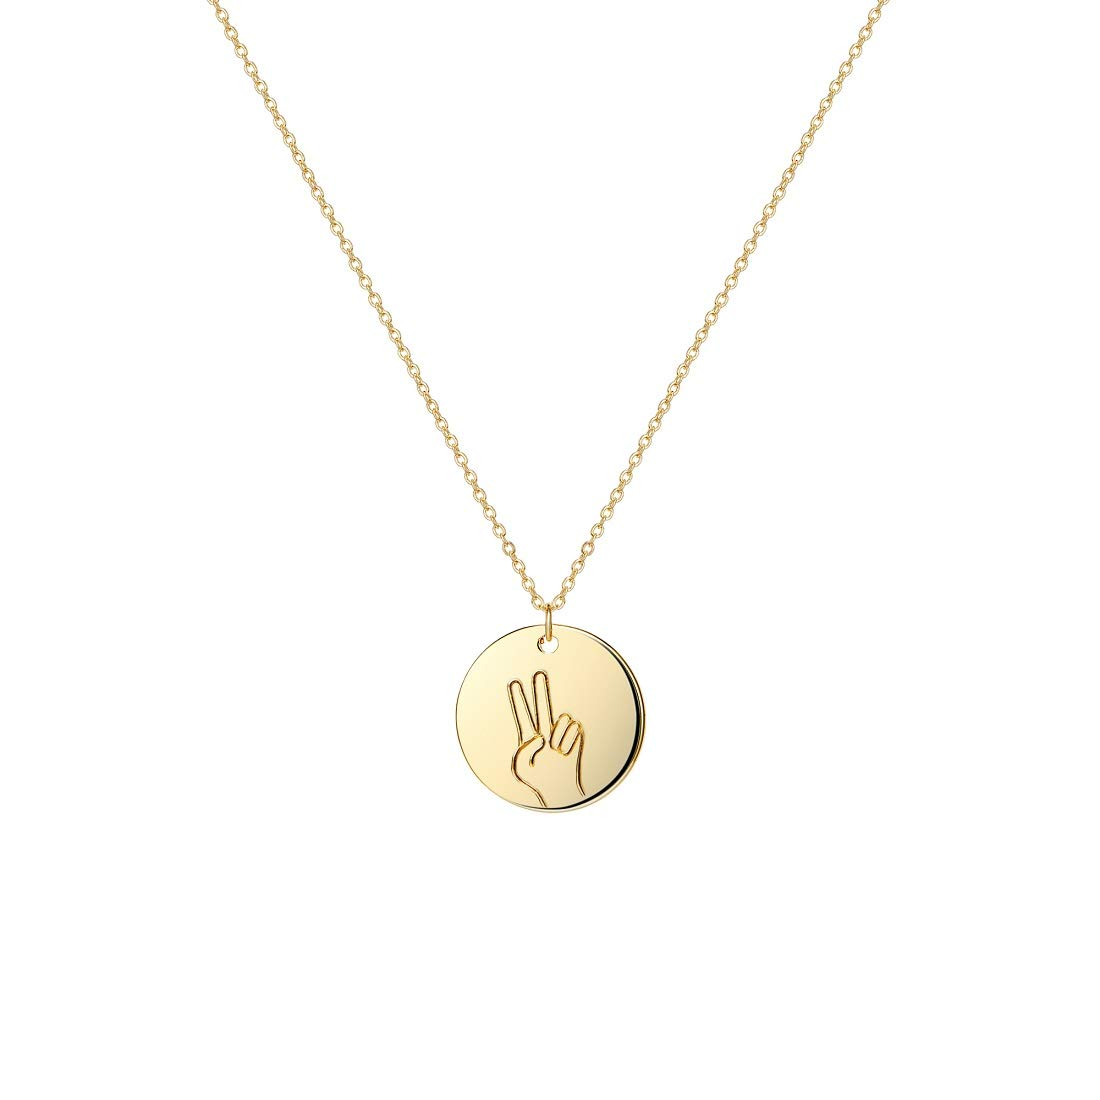 14K Gold Plated Dainty Funny Discs Finger Gestures Necklaces for Women Men Teen Citled Hand Gesture Pendant Necklace